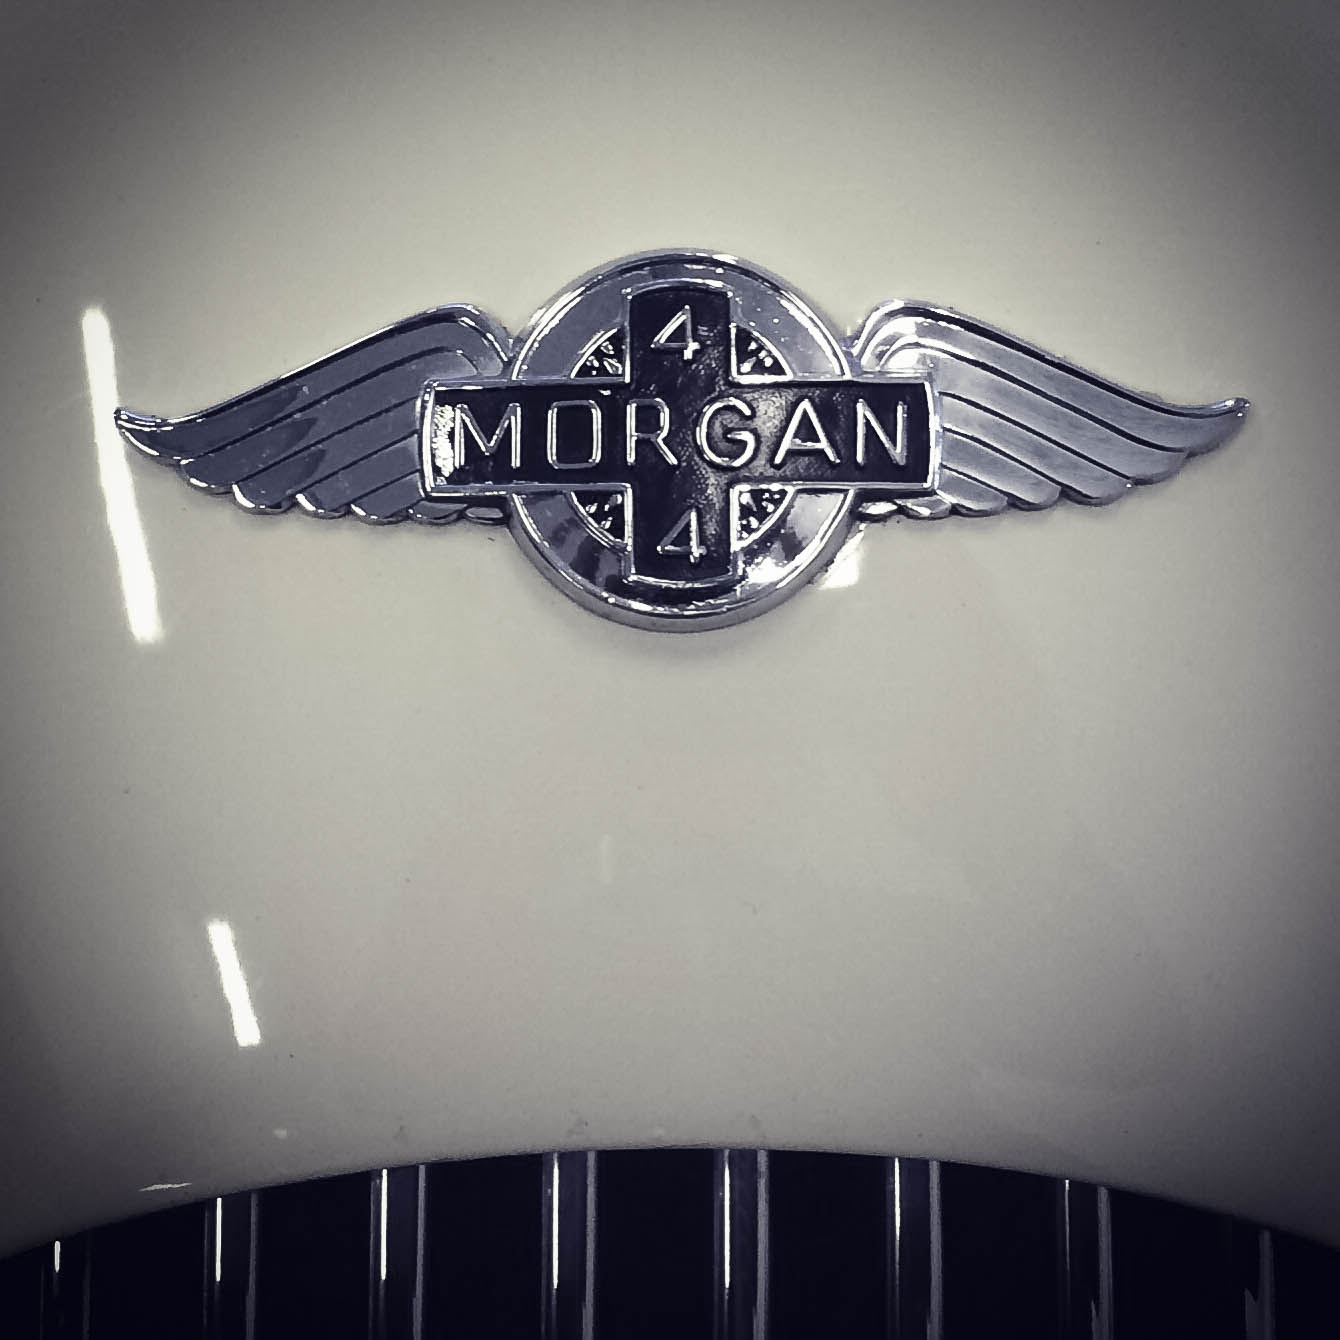 Morgan – Winged badge